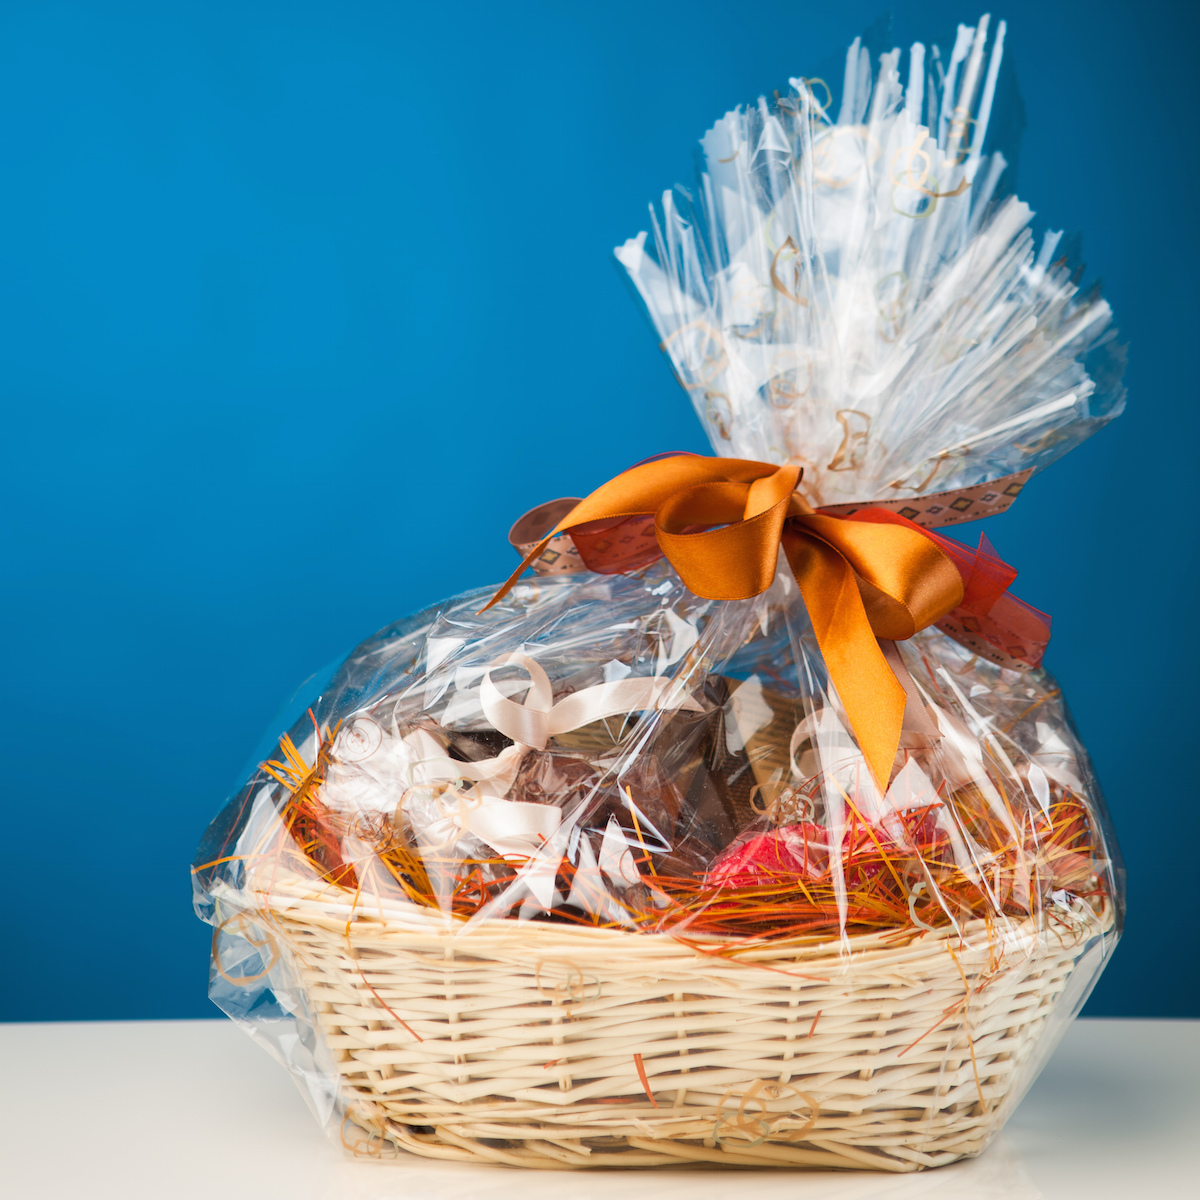 Gifts For Out Of Town Wedding Guests: Out Of Town Guest Gift Bag Ideas For Weddings